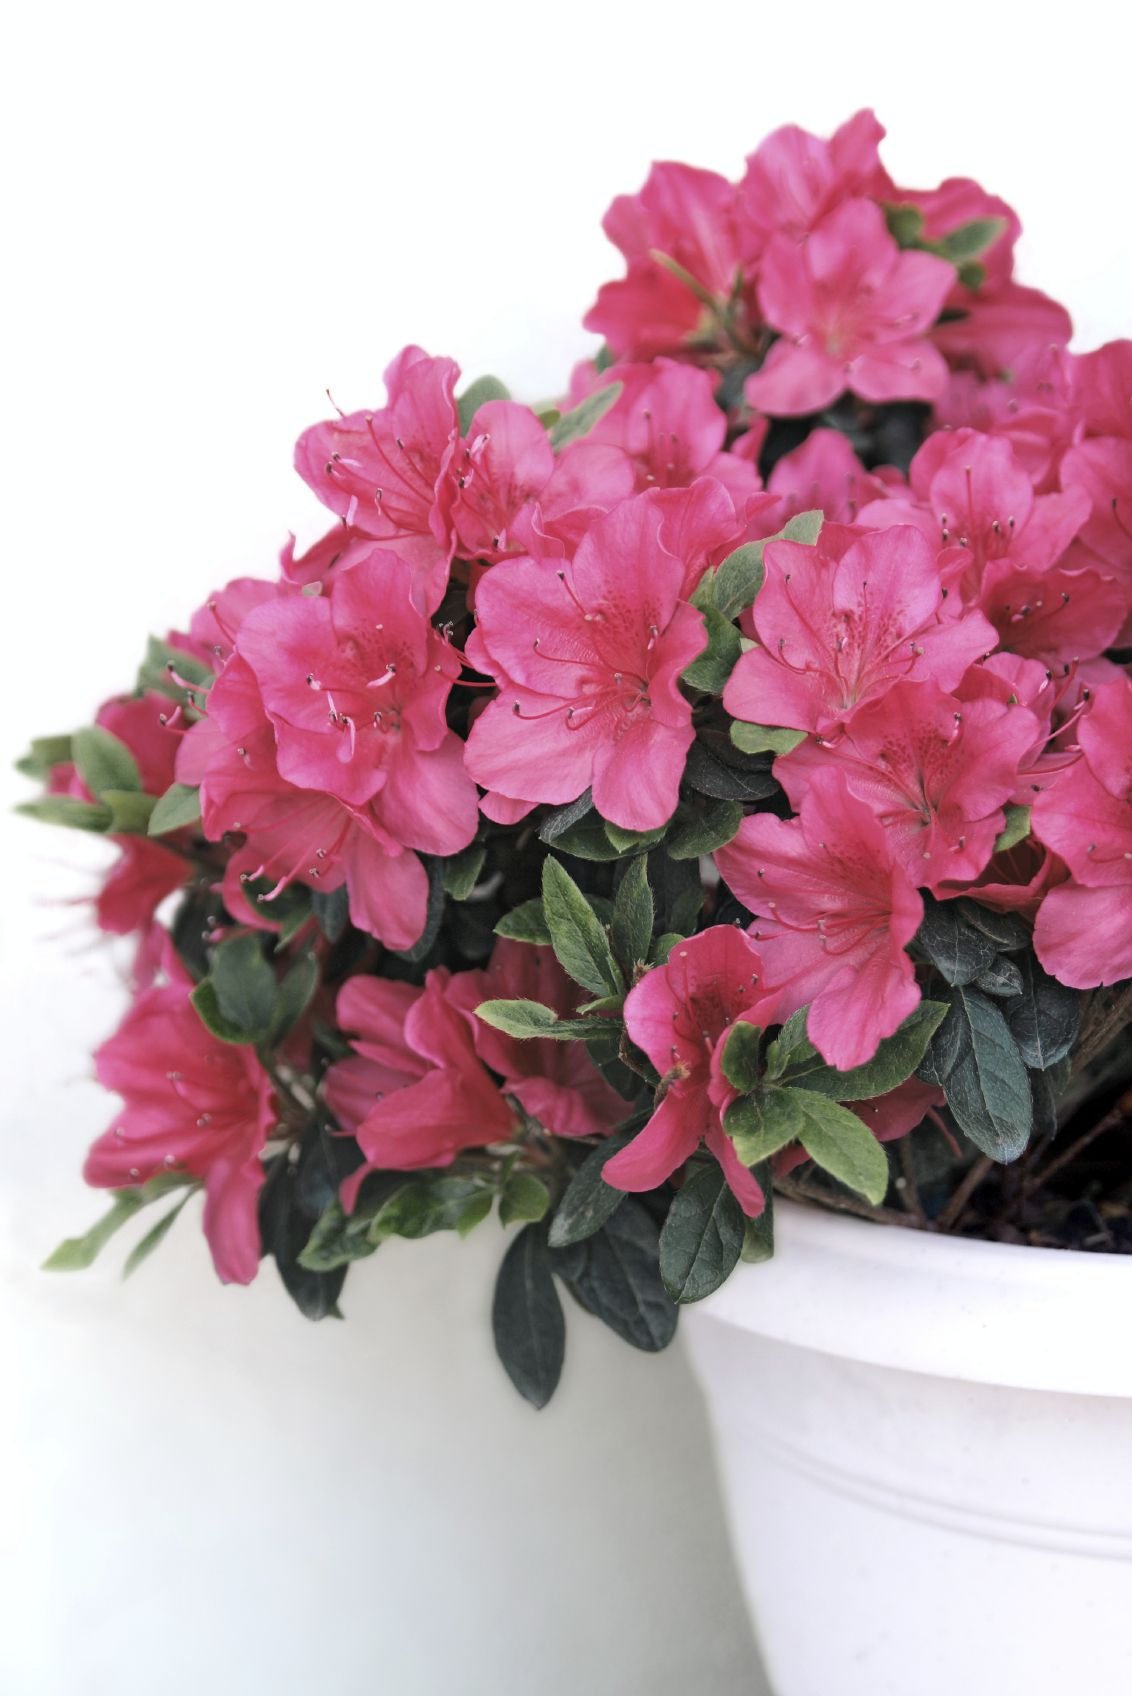 Caring For Azalea Plants In Pots How To Care For A Potted Azalea Plant Azalea Flower Plants Container Flowers